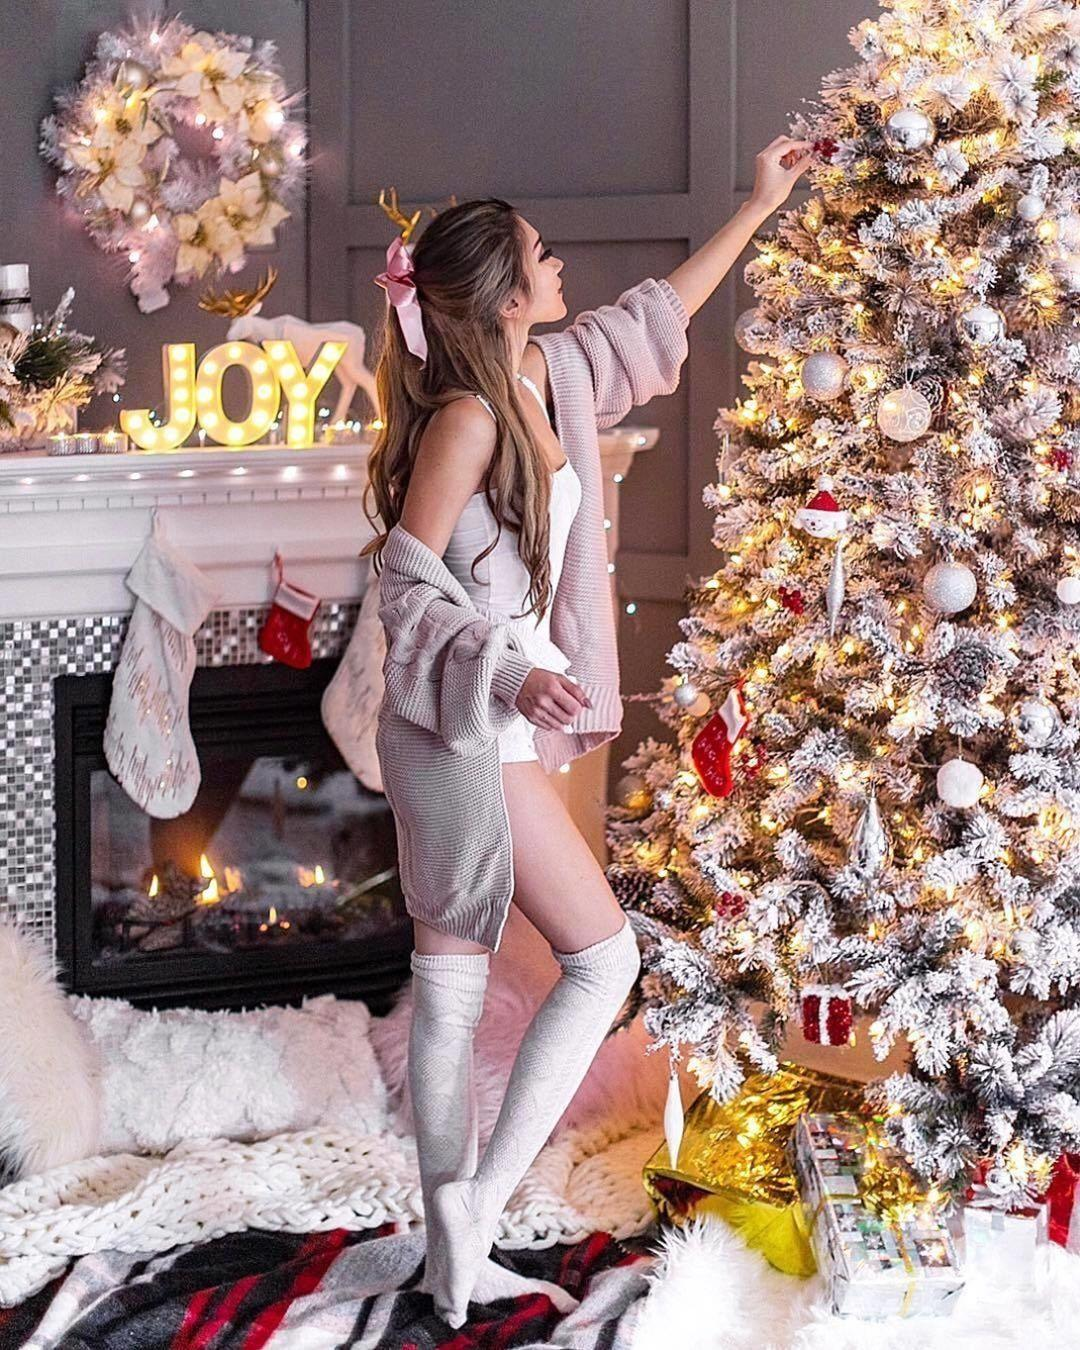 Sexy girl with ribbon in hair in stockings decorating Christmas tree